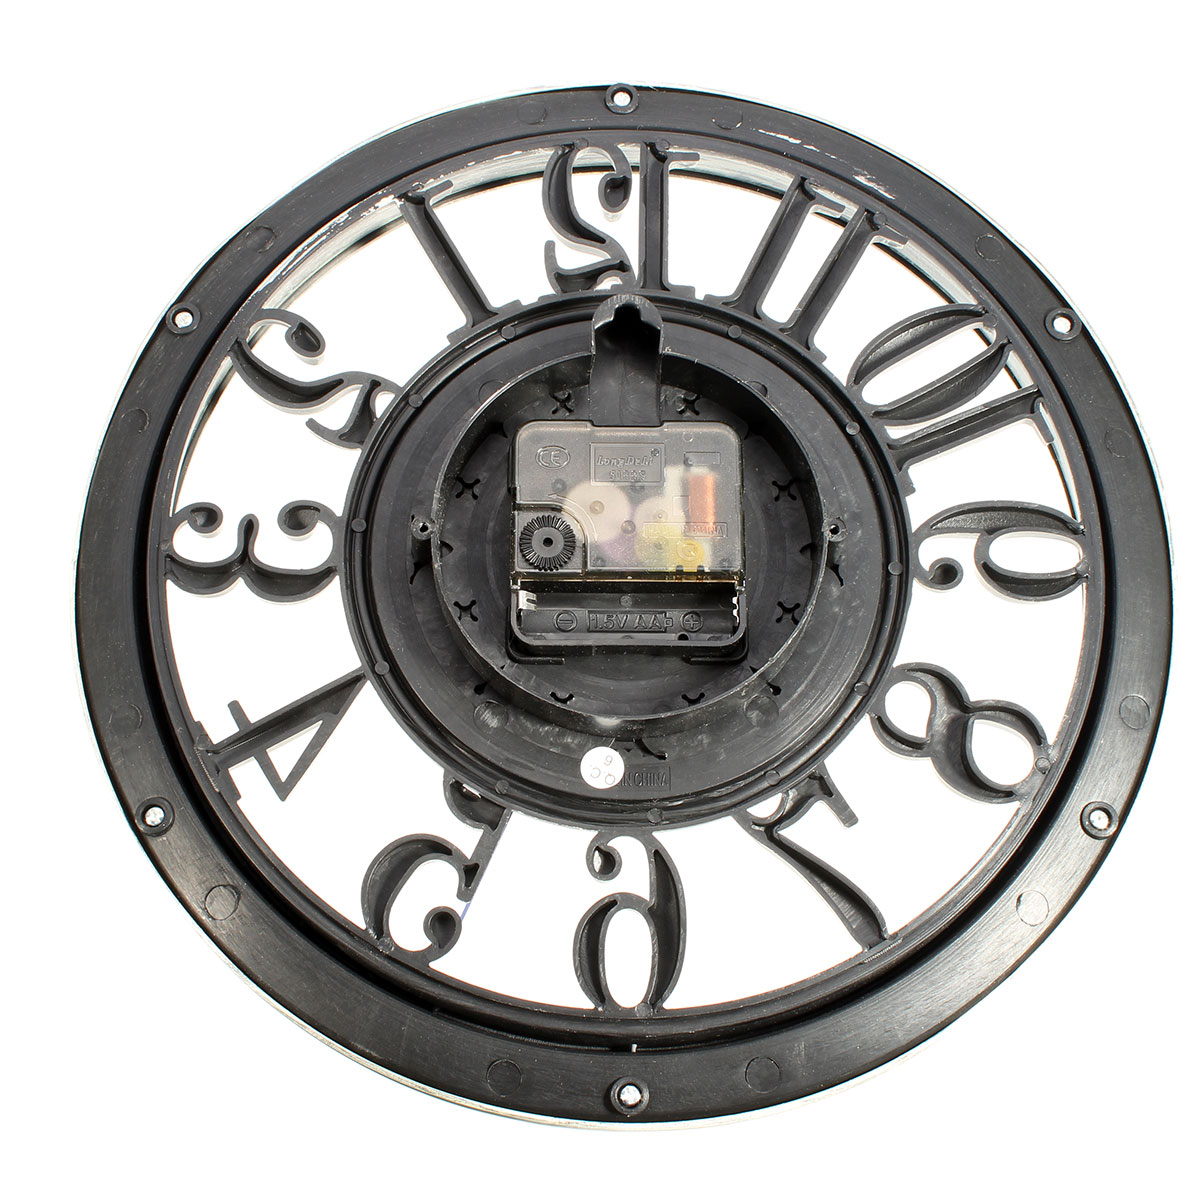 European Vintage Retro Living Room Wall Clock Mute Quartz Watches Home Wall Decor Gift